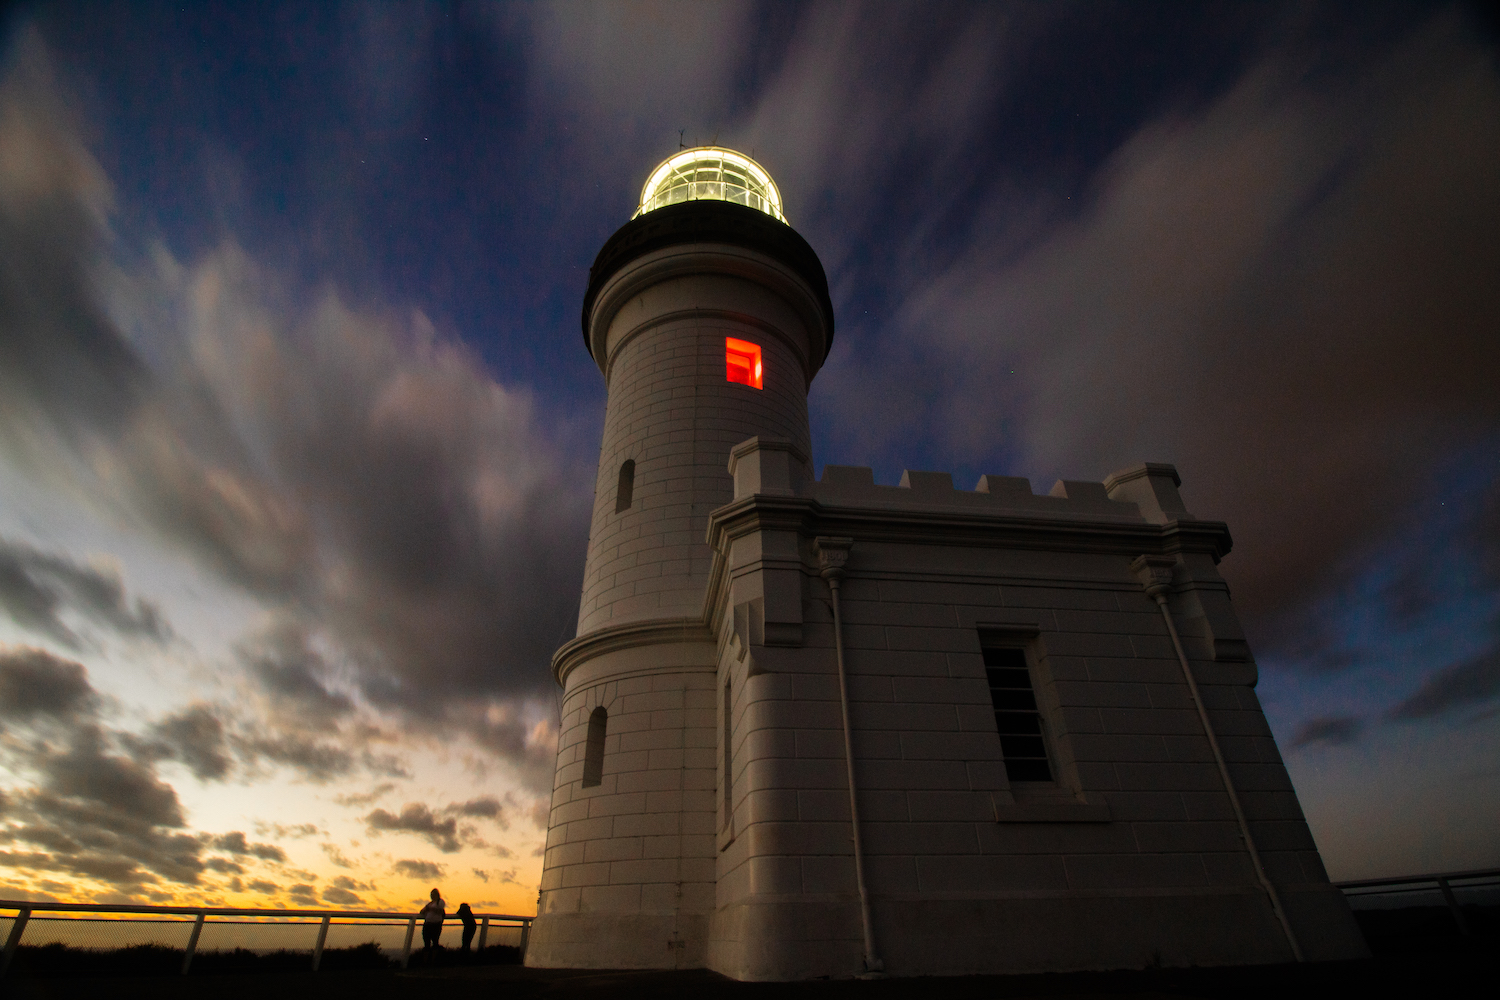 byron light house - things to do